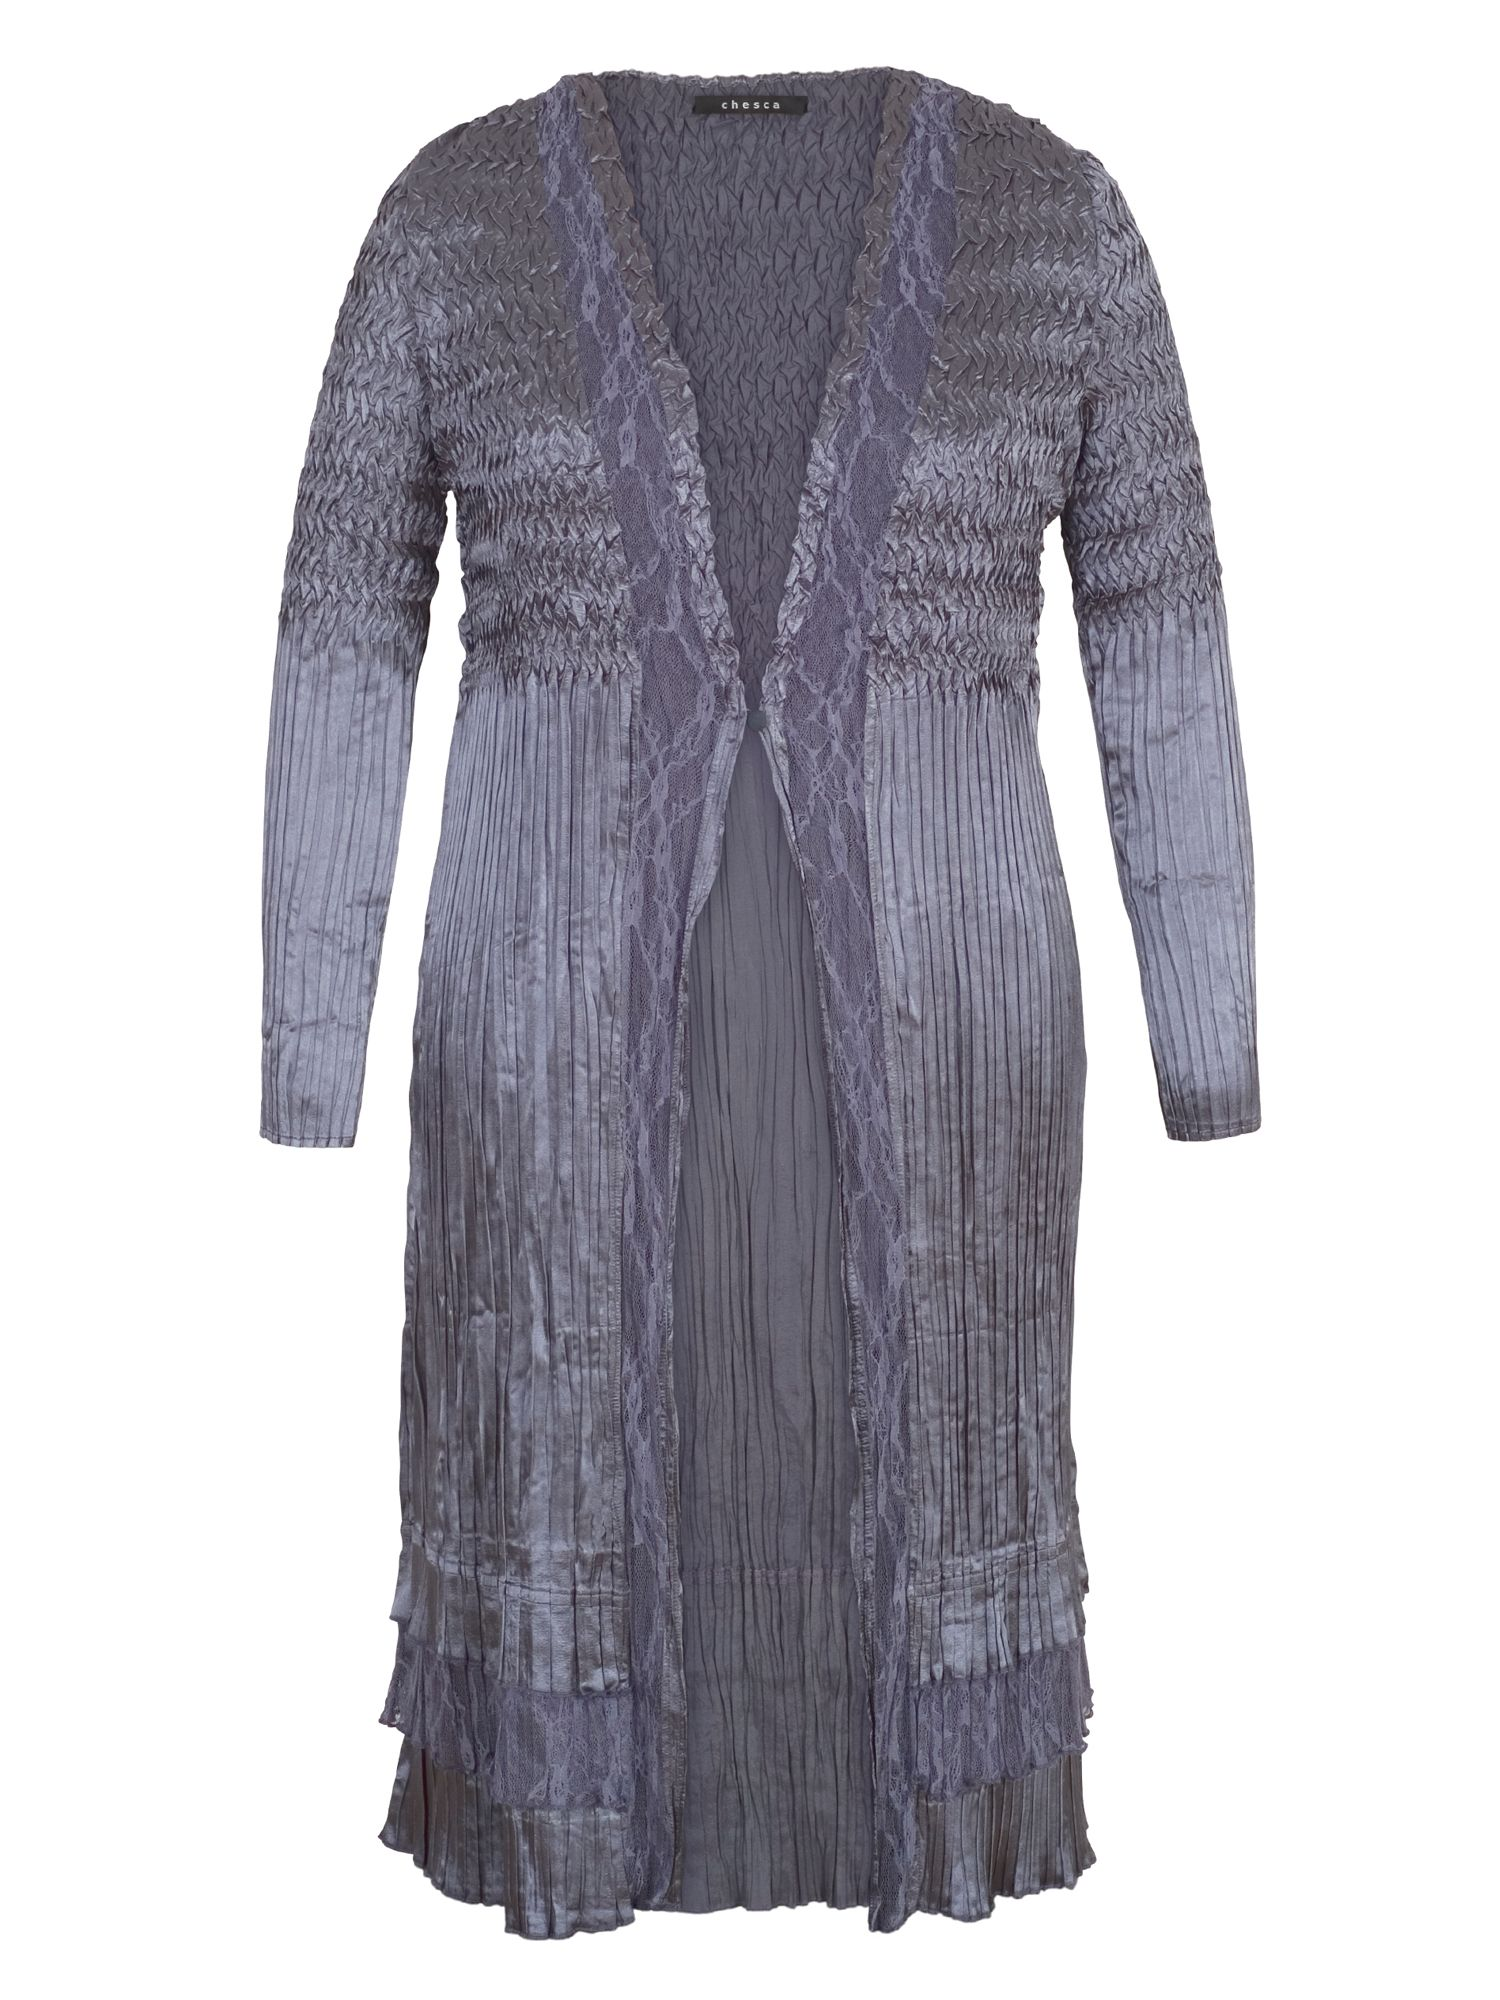 Chesca Crush Pleat Satin Coat with Lace Trim, Steel